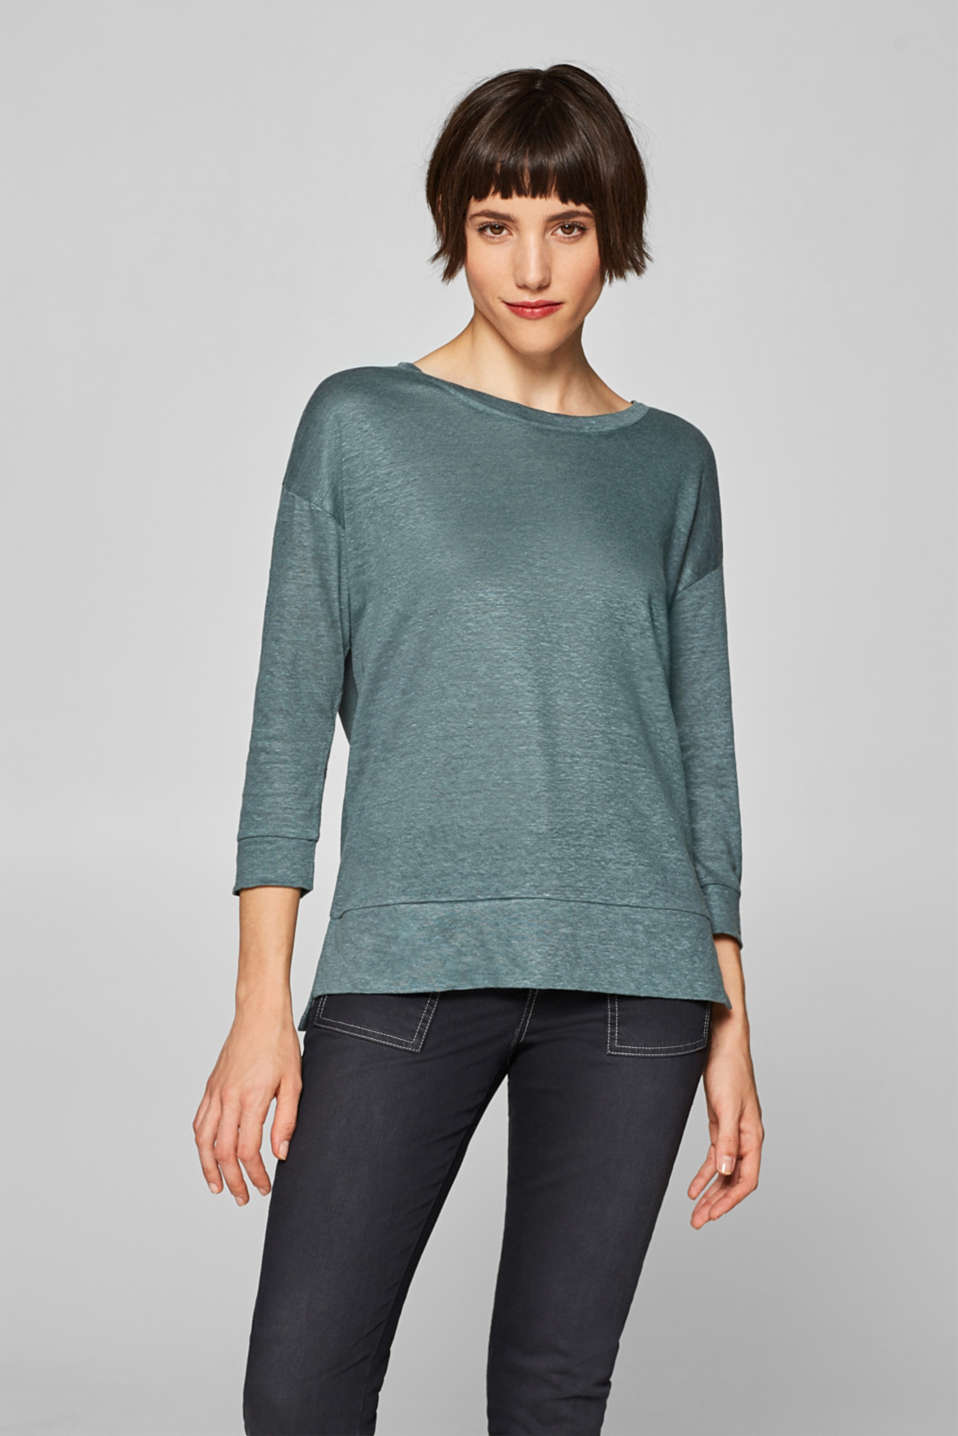 Esprit - 100% linen: top with three-quarter length sleeves